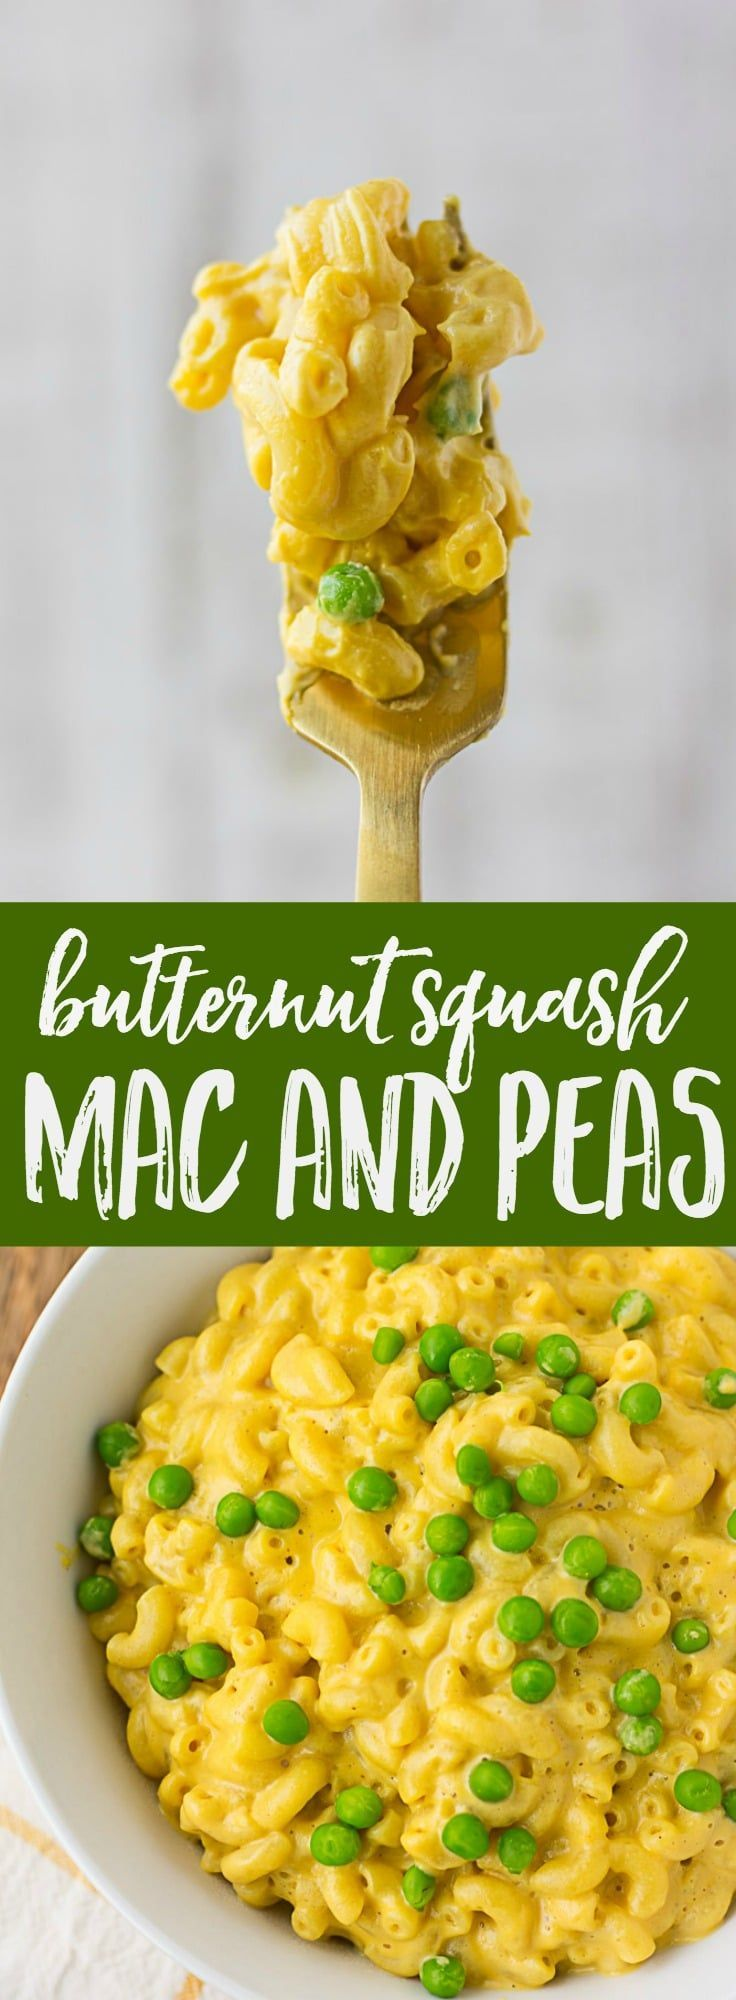 Vegan Butternut Squash Mac And Cheese With Peas Nora Cooks Oil Free Gluten Free Option Butternut Squash Mac And Cheese Vegan Pasta Recipes Recipes